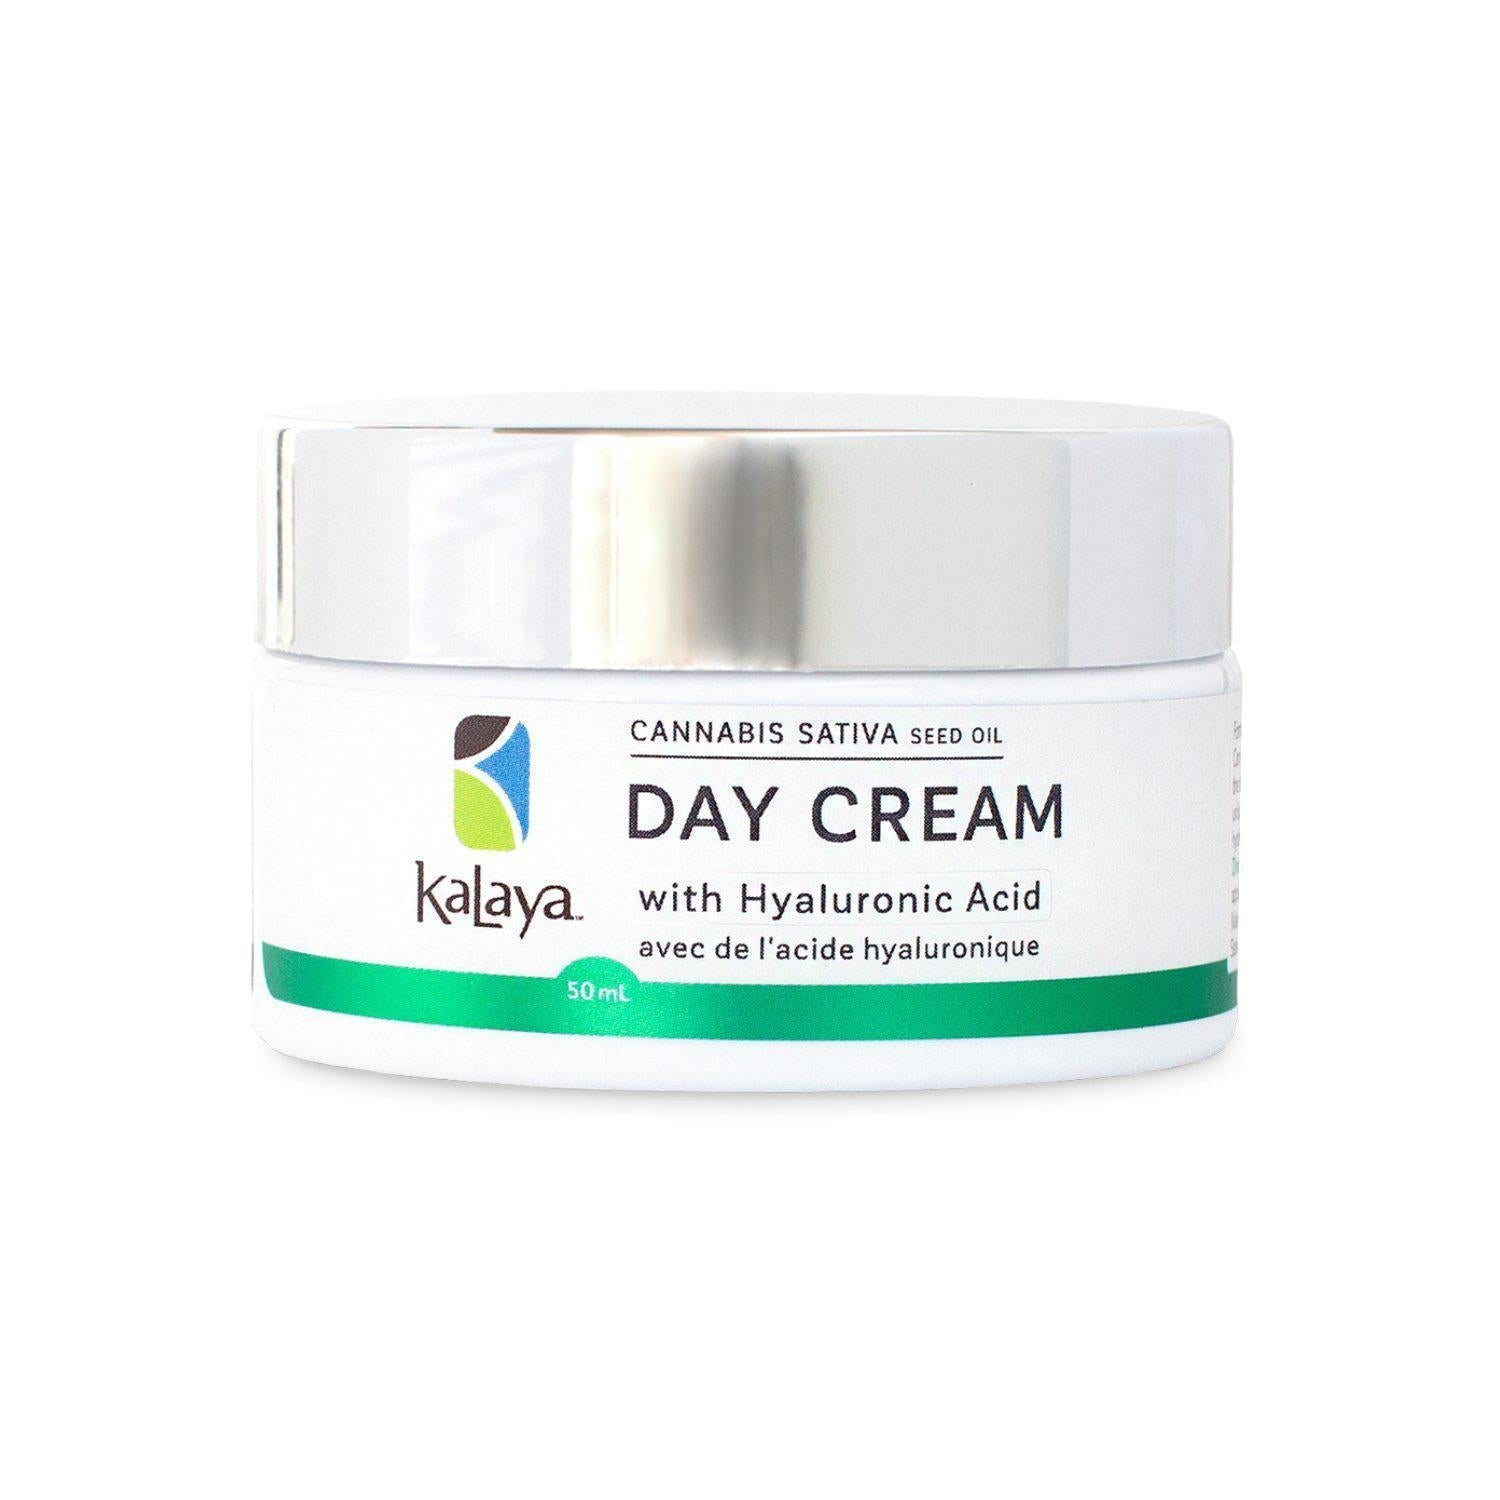 Kalaya Cannabis Sativa Seed Oil Day Cream | Crème de jour à l'huile de graines de cannabis sativa-Skin Treatment-Kalaya